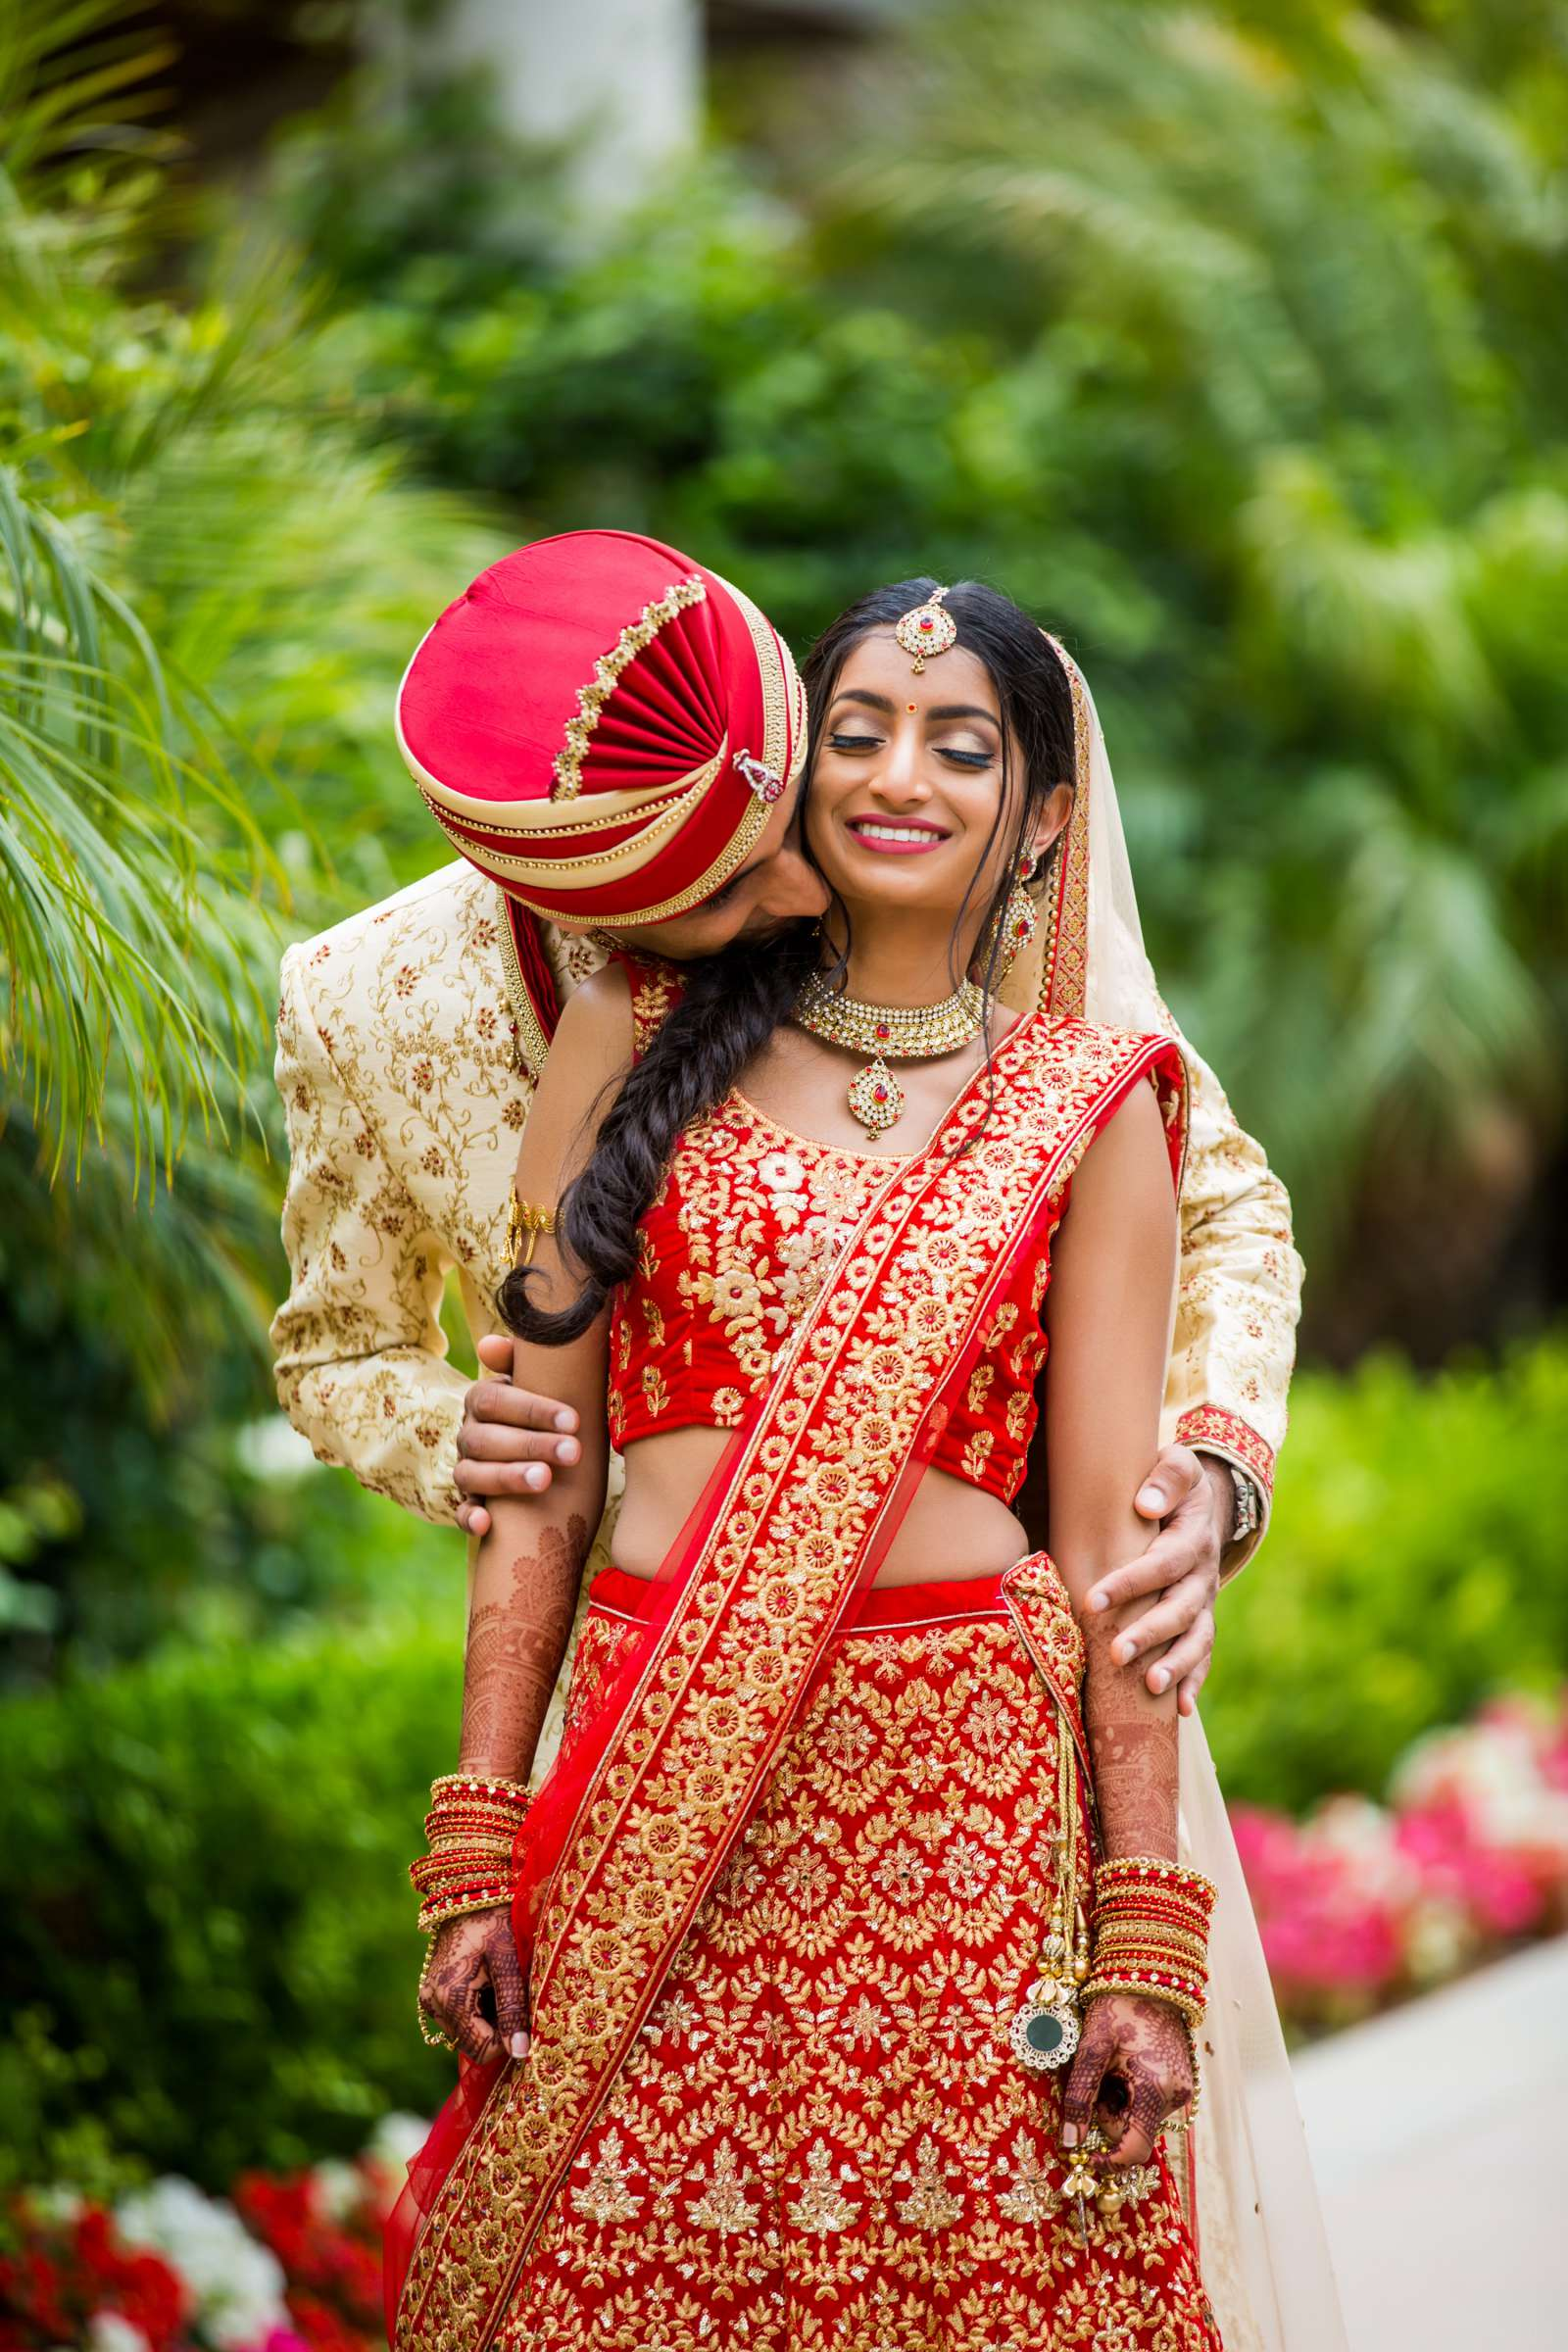 The Westin Carlsbad Resort and Spa Wedding coordinated by Shilpa Patel Events, Ami and Amit Wedding Photo #174 by True Photography